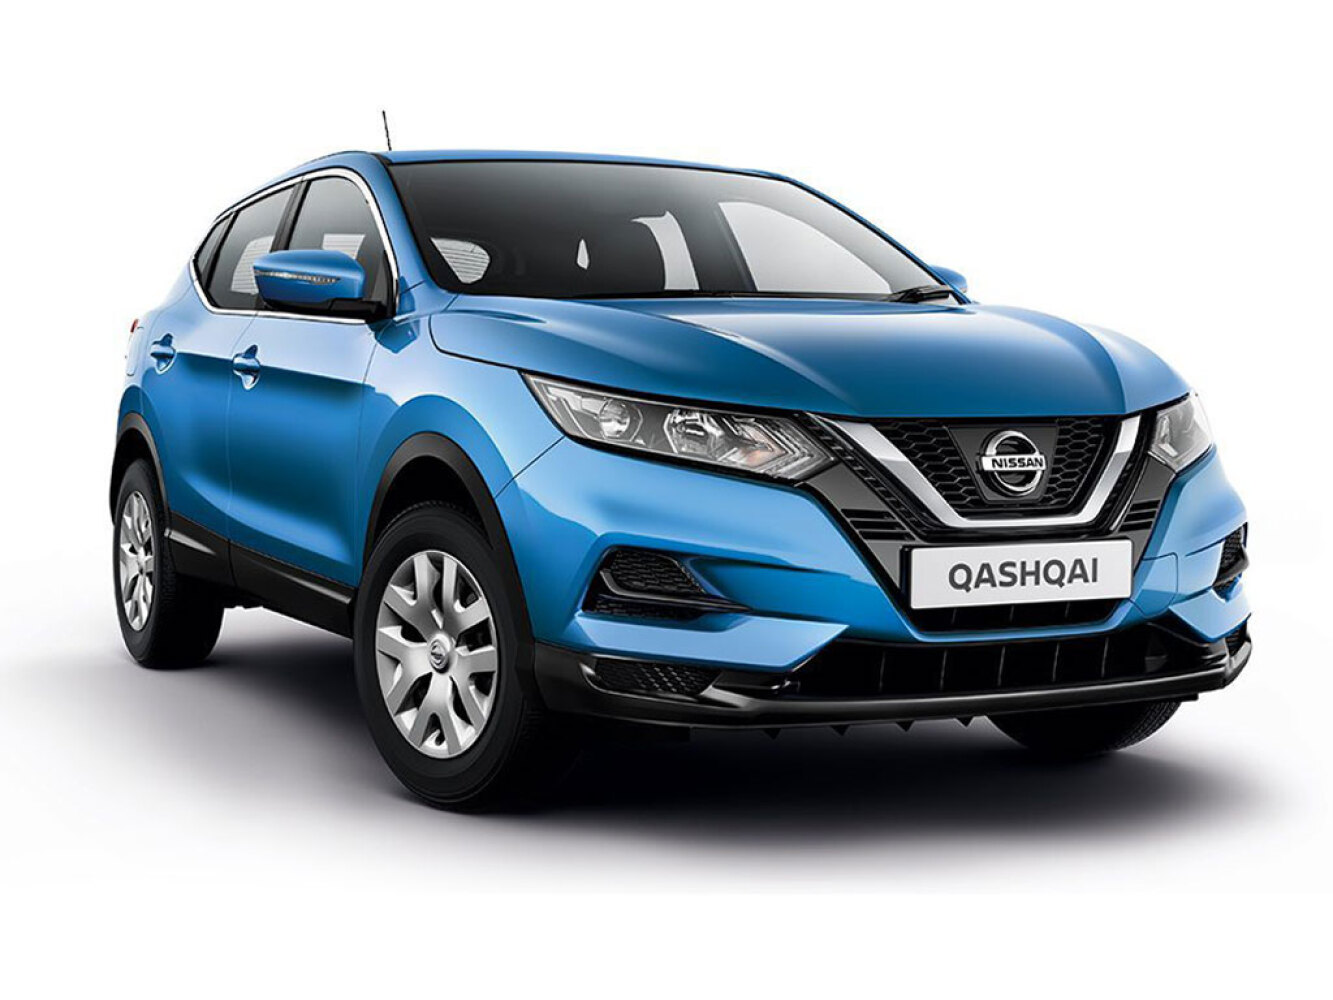 new nissan qashqai 1 5 dci 115 visia 5dr smart vision. Black Bedroom Furniture Sets. Home Design Ideas